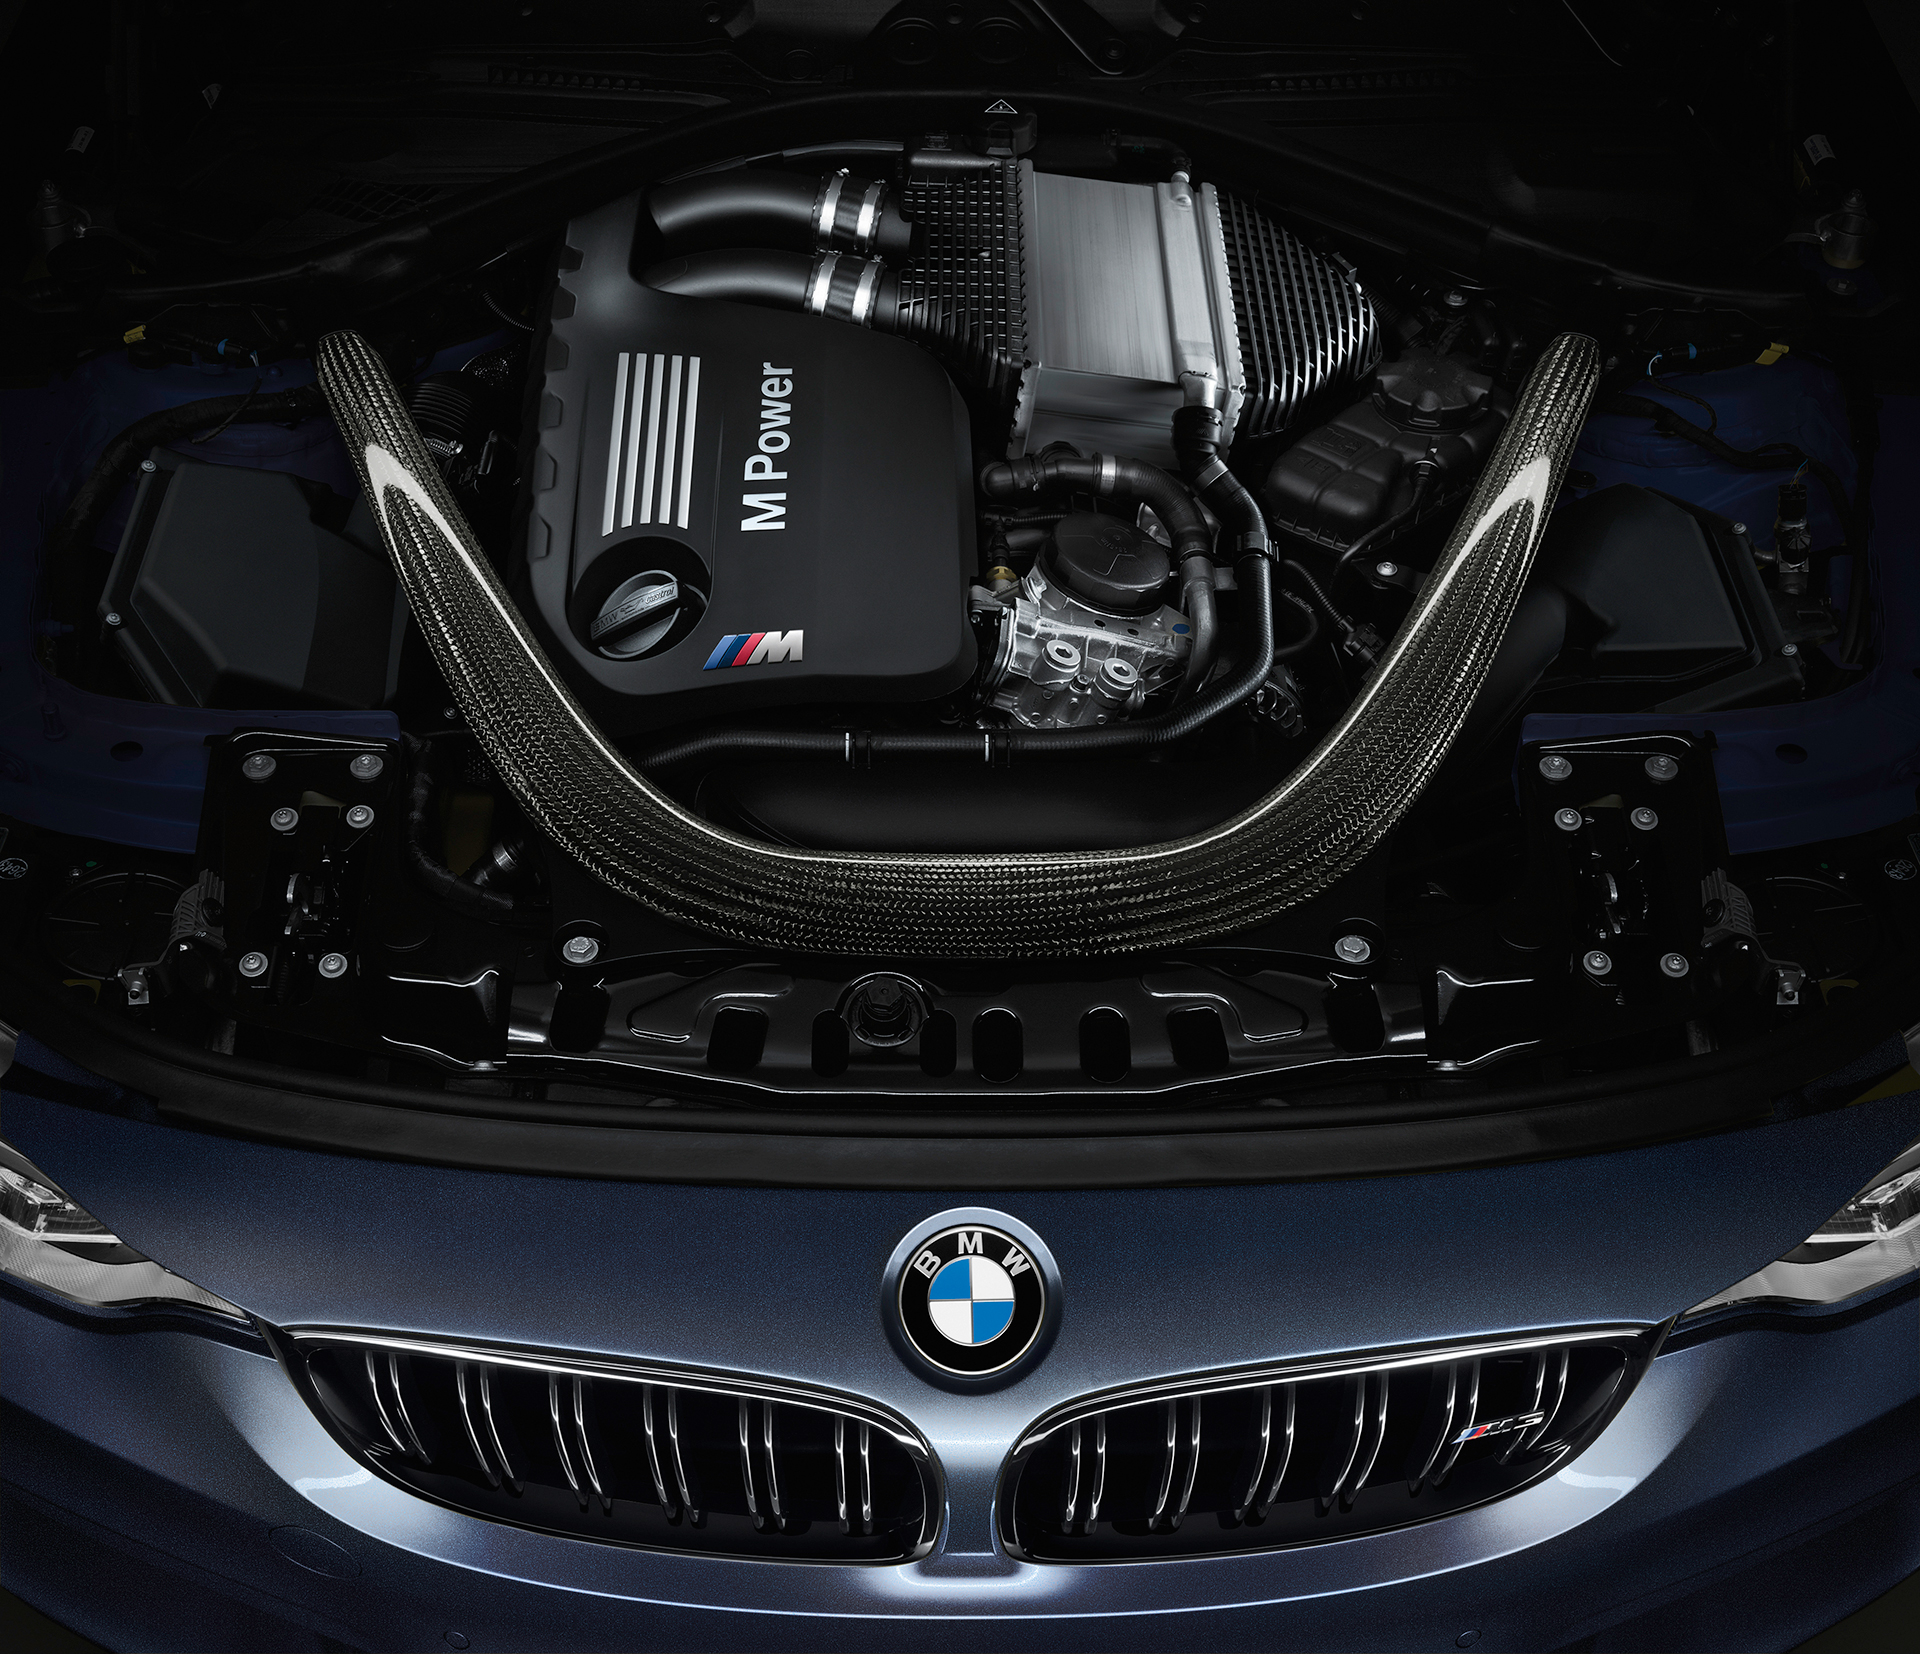 BMW M3 - 30 Jahre Edition - 2016 - engine under the hood / sous le capot moteur